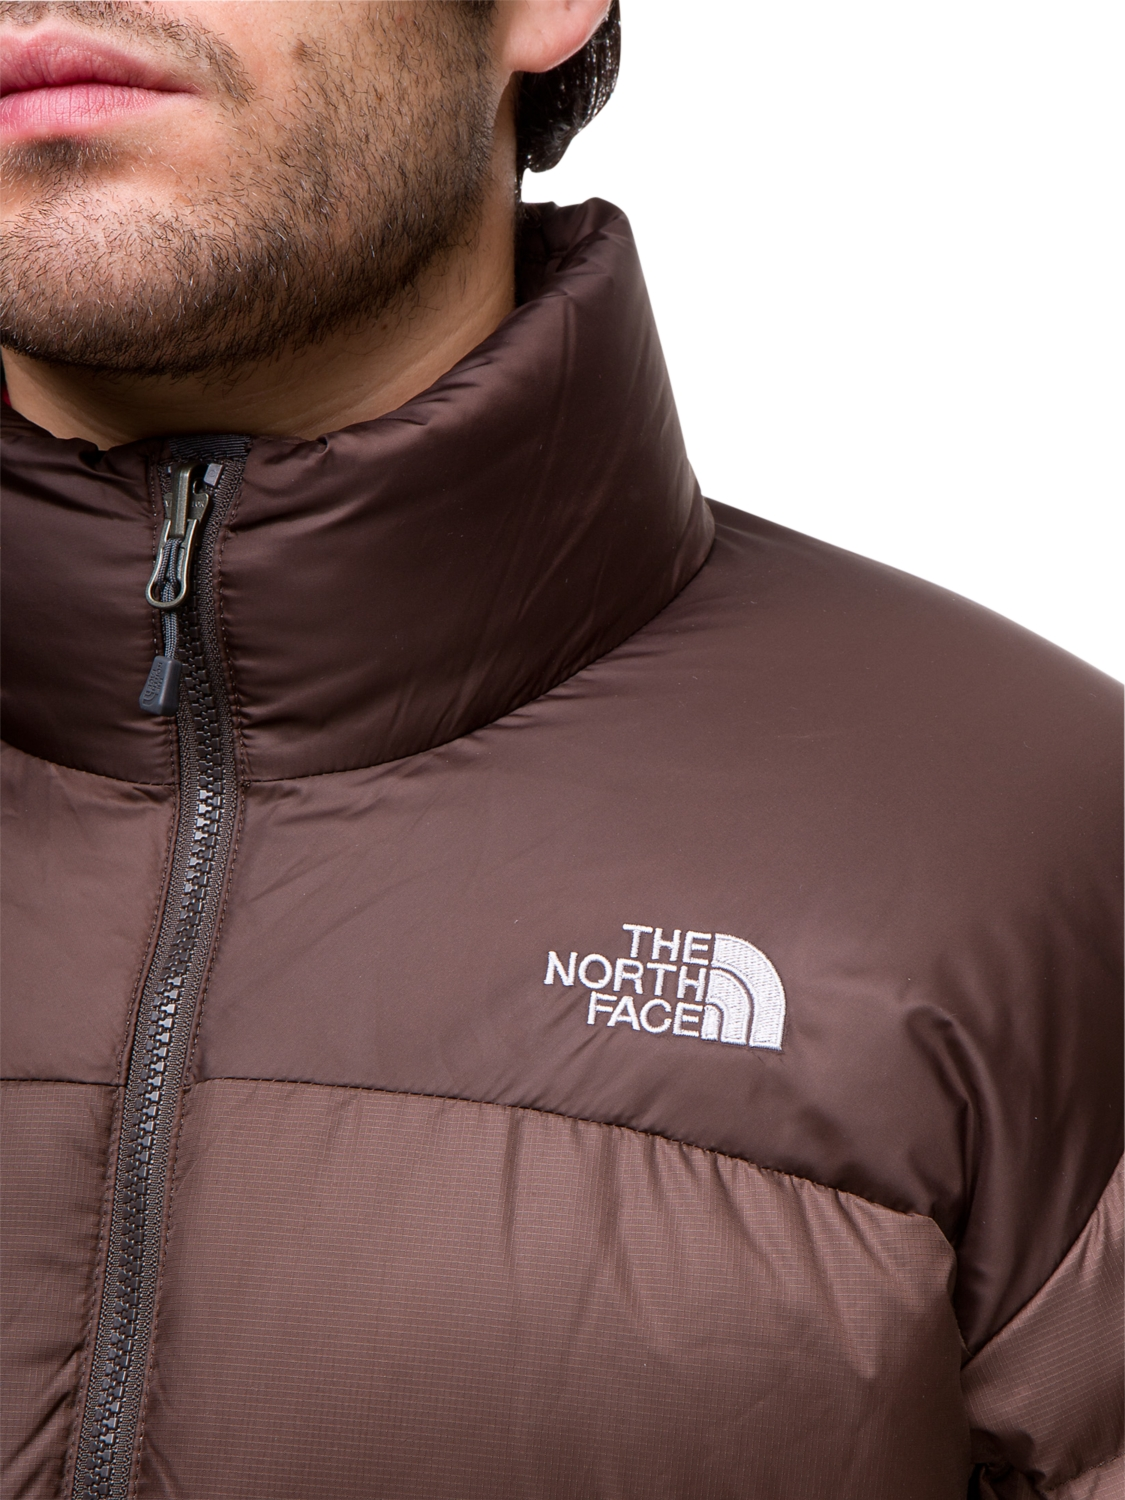 485efe15c2be The North Face The North Face Mens Nuptse 2 Jacket Bittersweet Brown ...